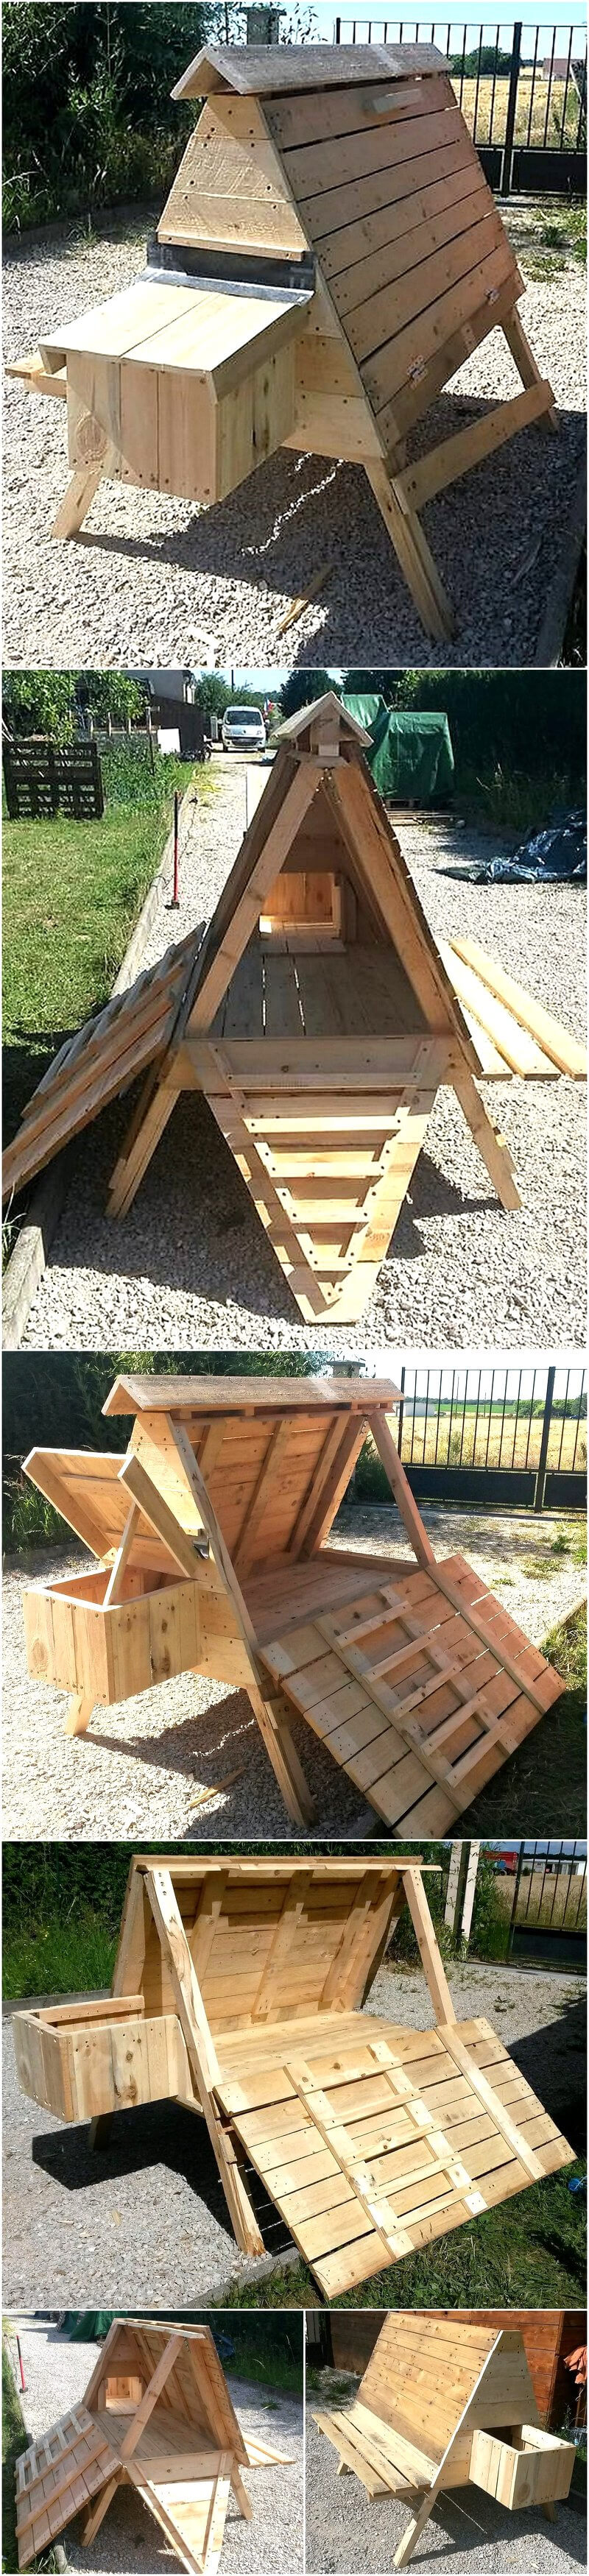 Reuse wood pallets to create such amazing things pallet Chicken coop from pallet wood